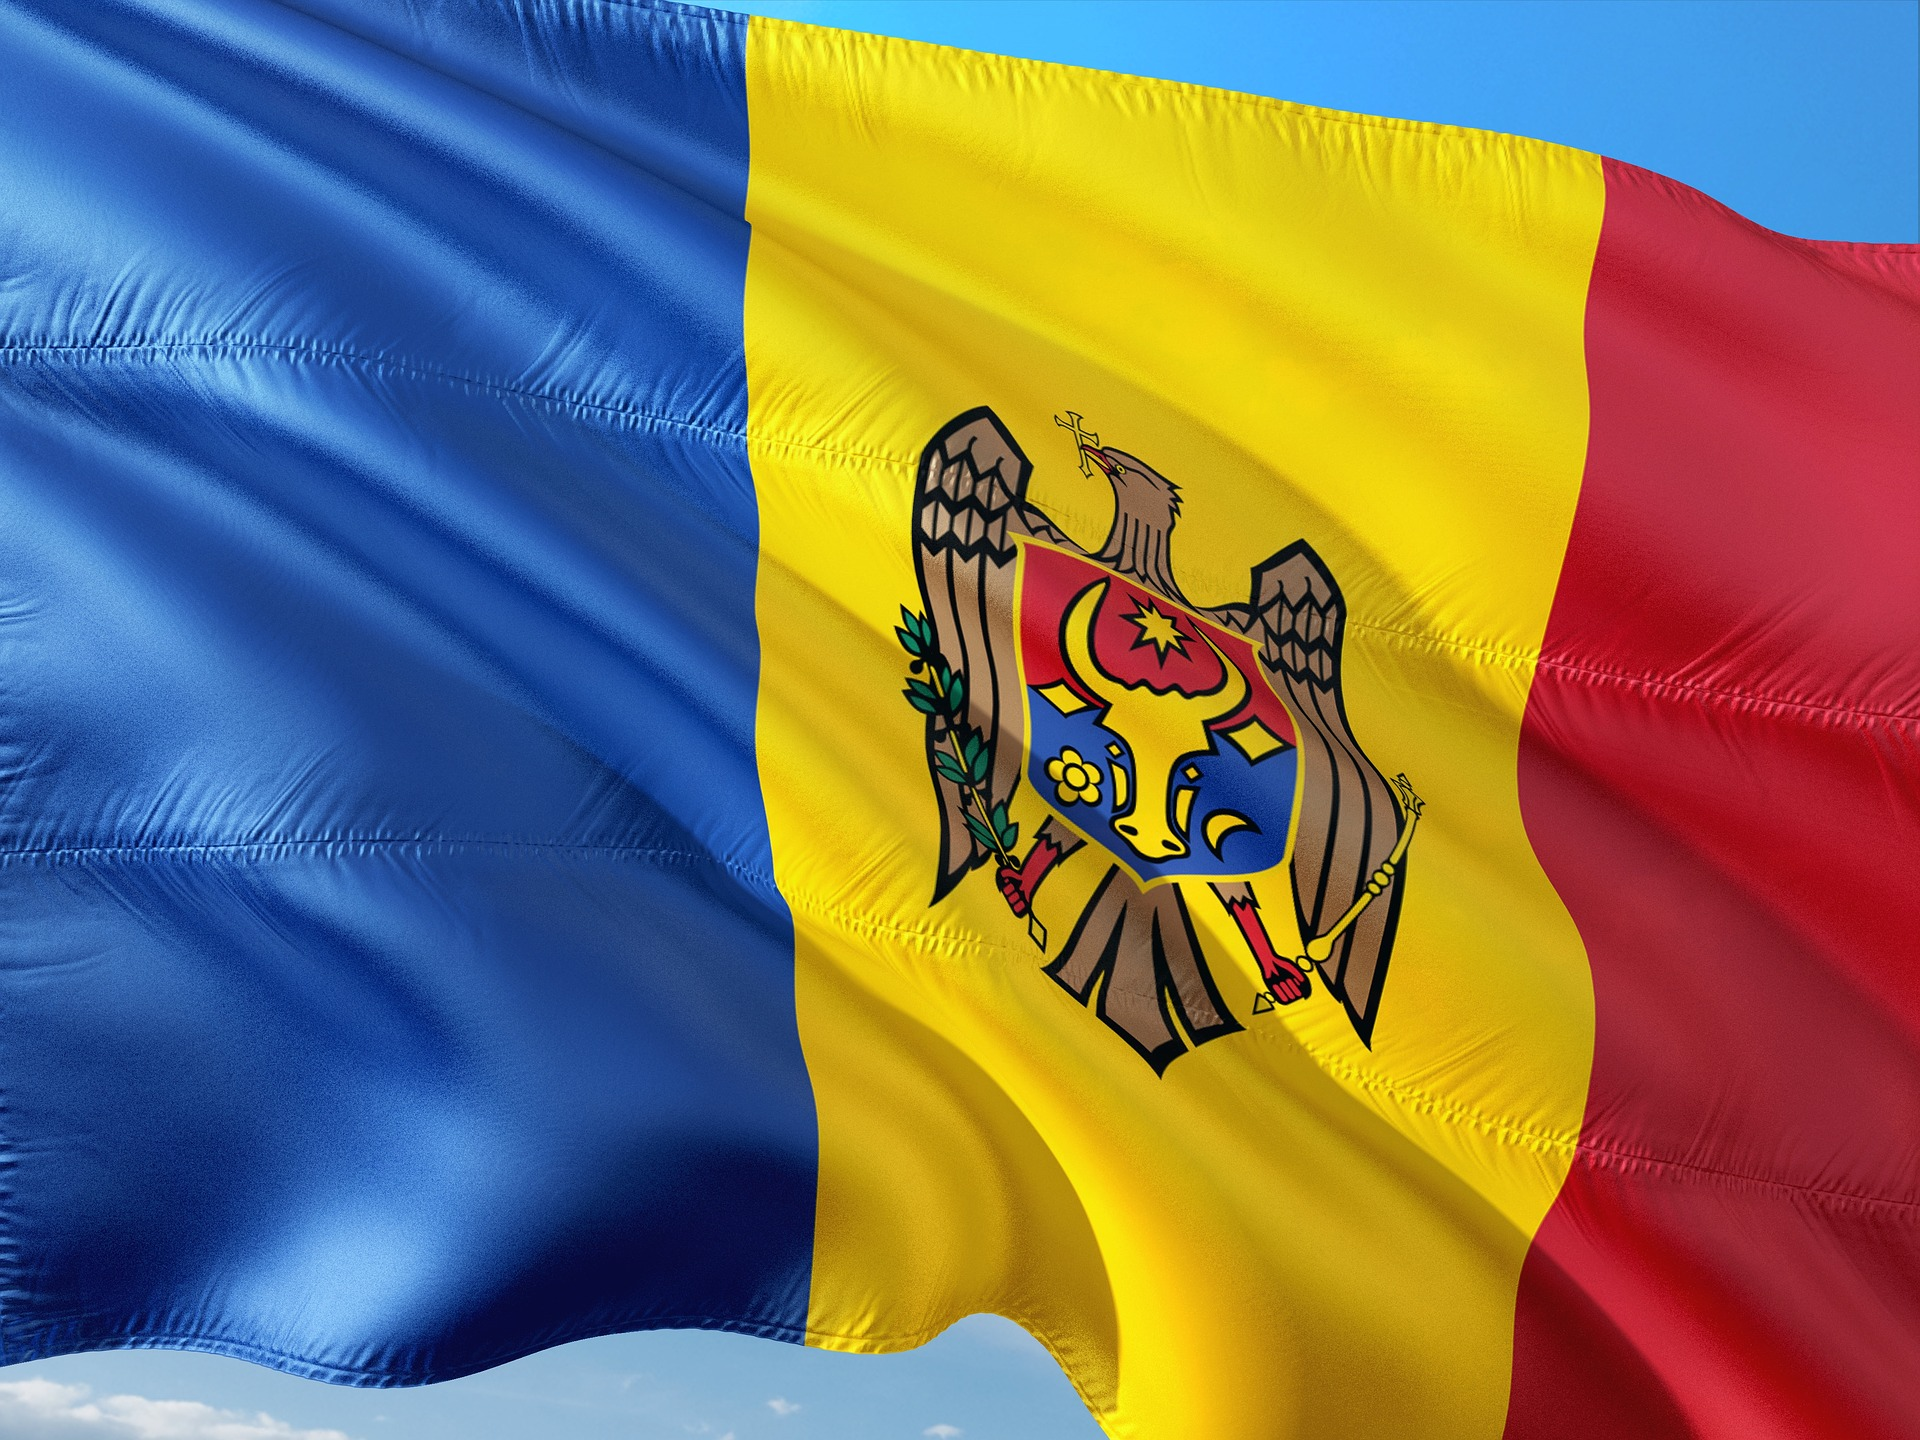 Private detectives and investigators in Moldova